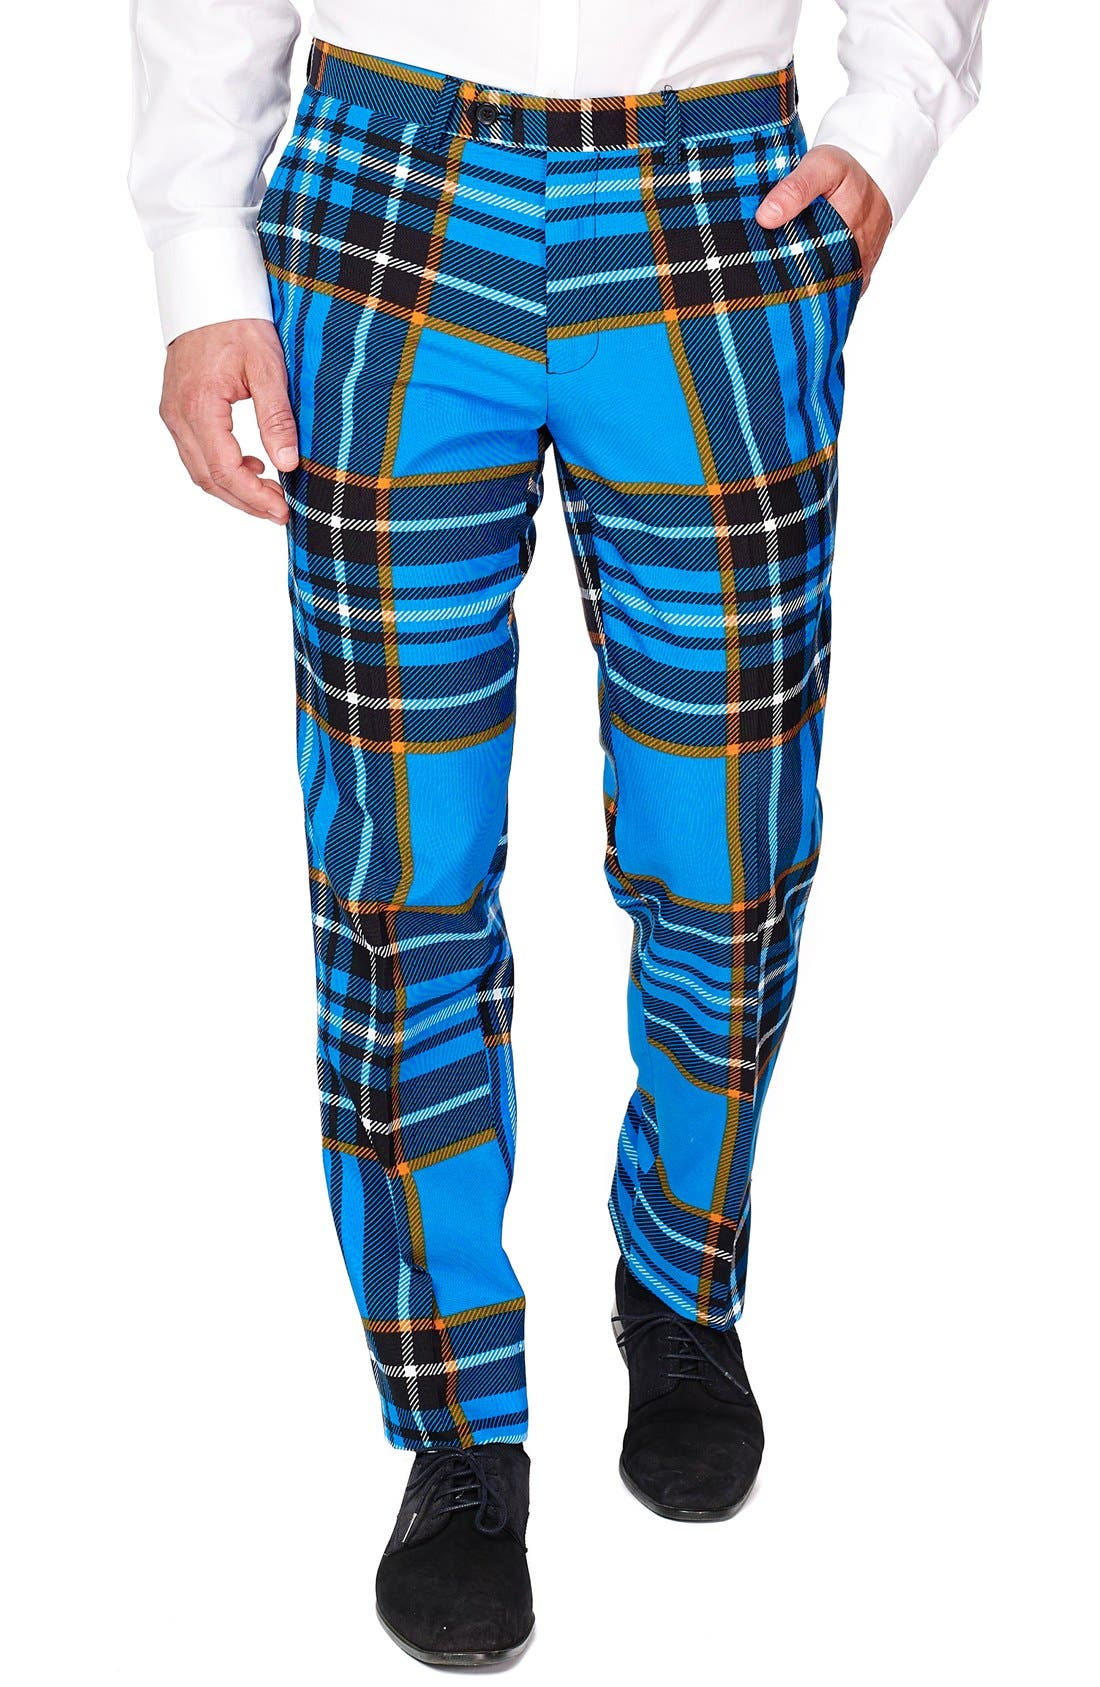 Alternate Image 3  - OppoSuits 'Braveheart' Trim Fit Suit with Tie